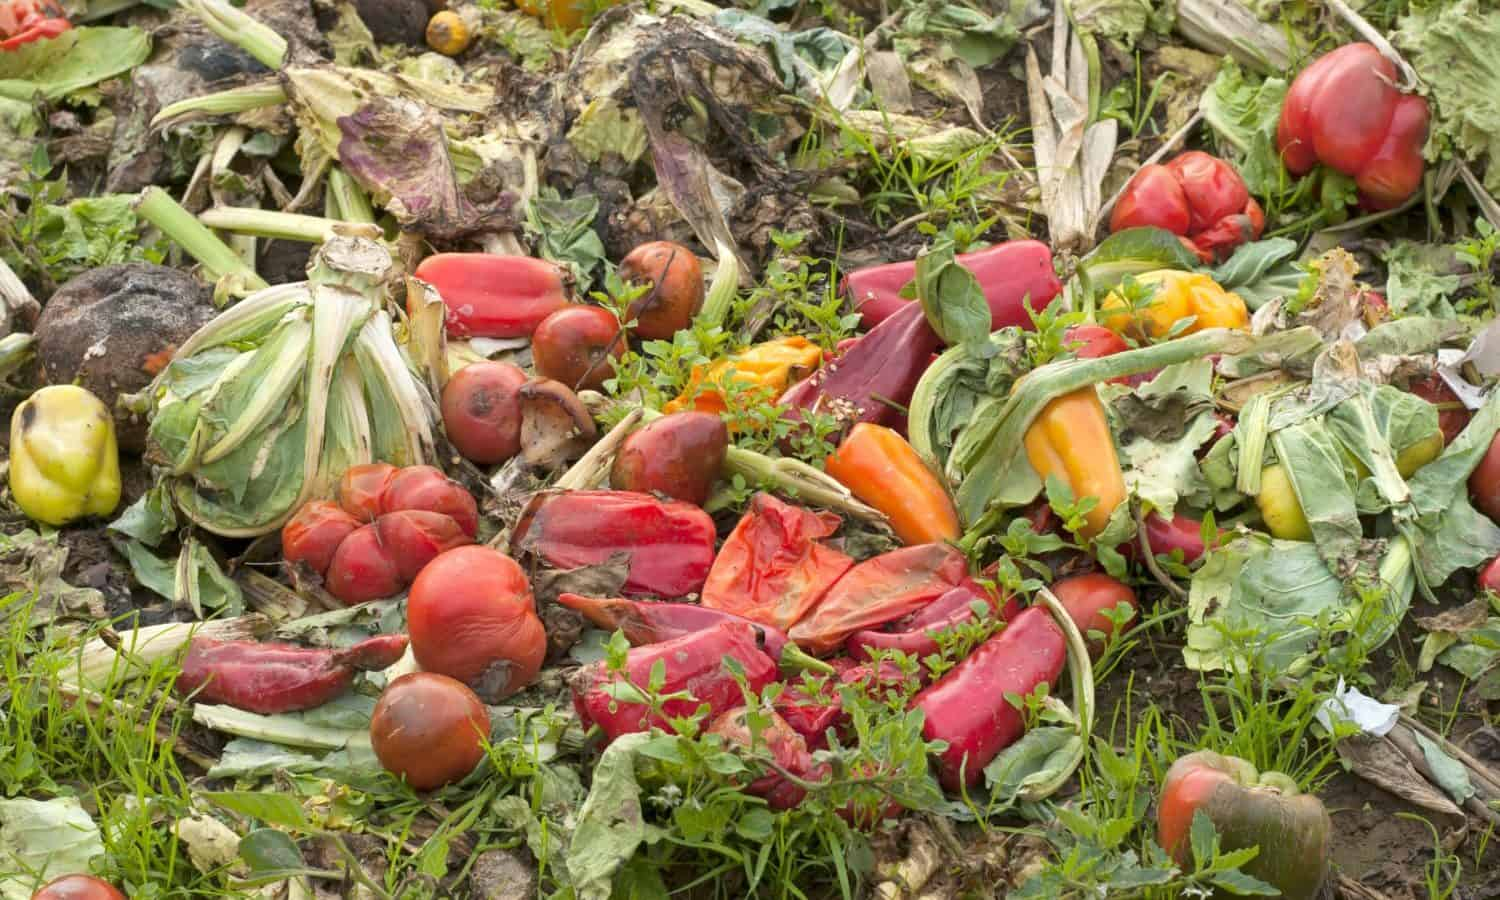 The Natural Resources Defense Council's latest food waste report highlights how consumers are the biggest wasters of food across the entire food chain.